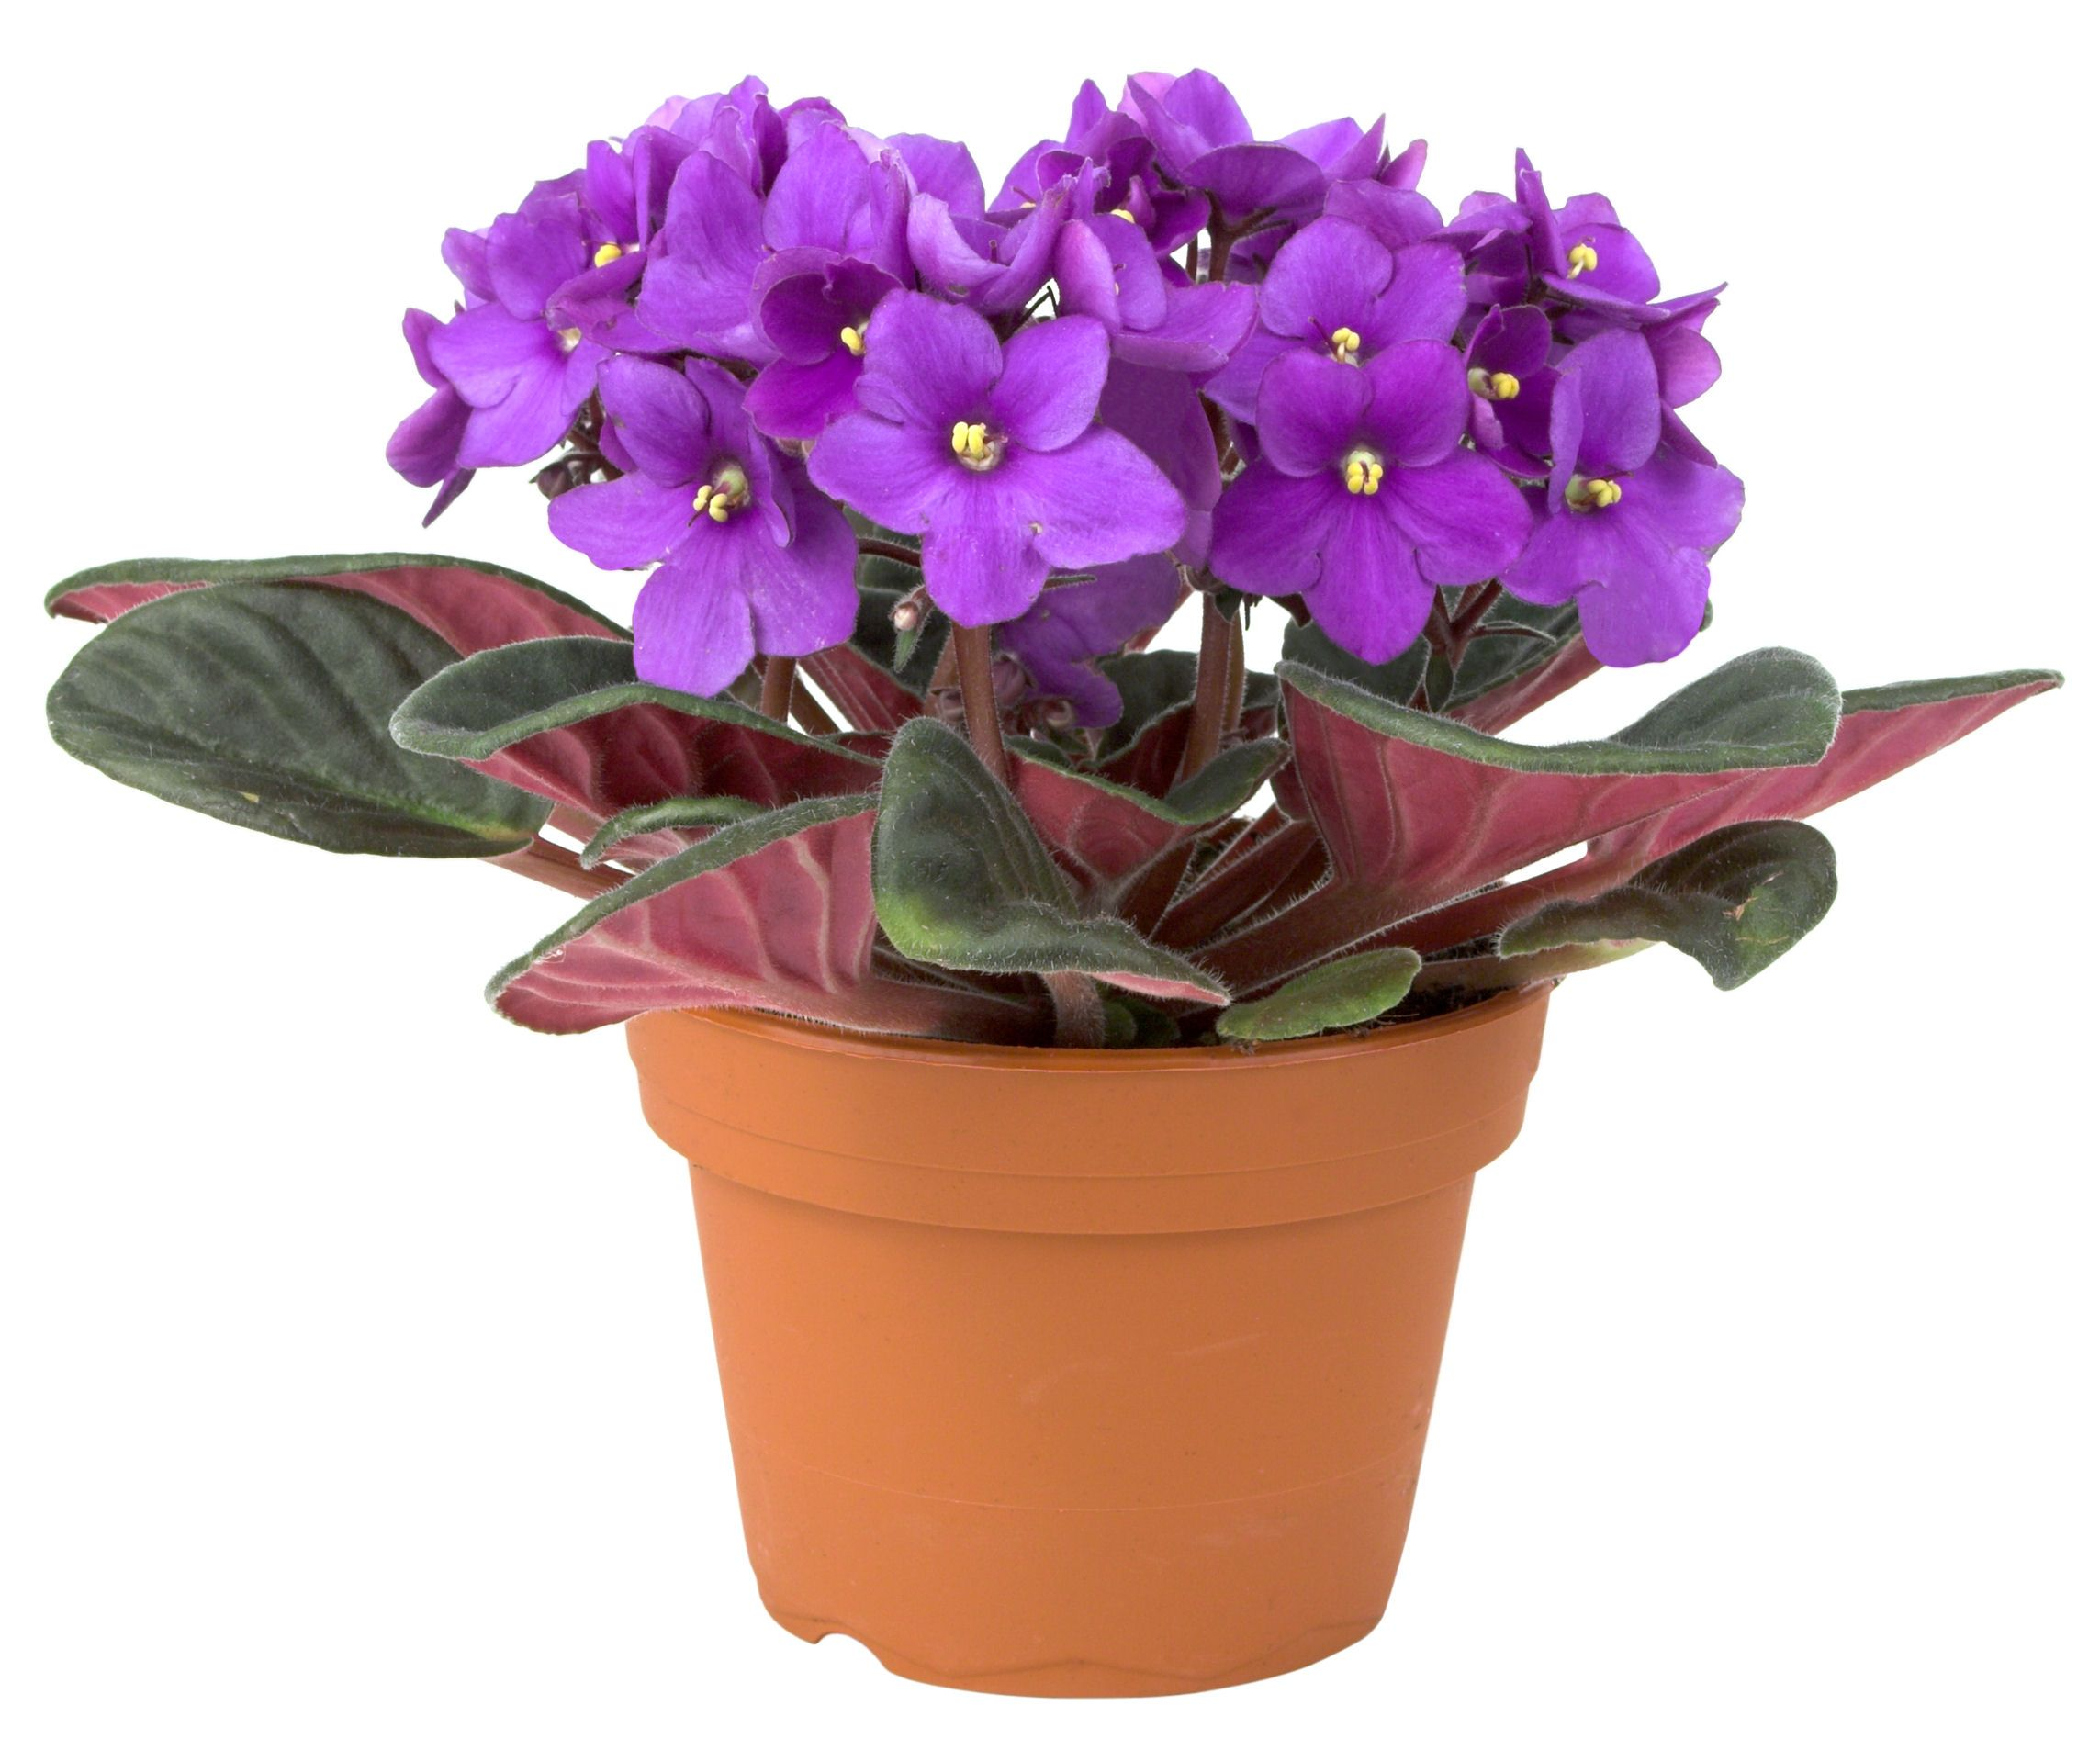 spruce up your dorm with flowers 6 perfect plants for dorm - Flowering House Plants Purple